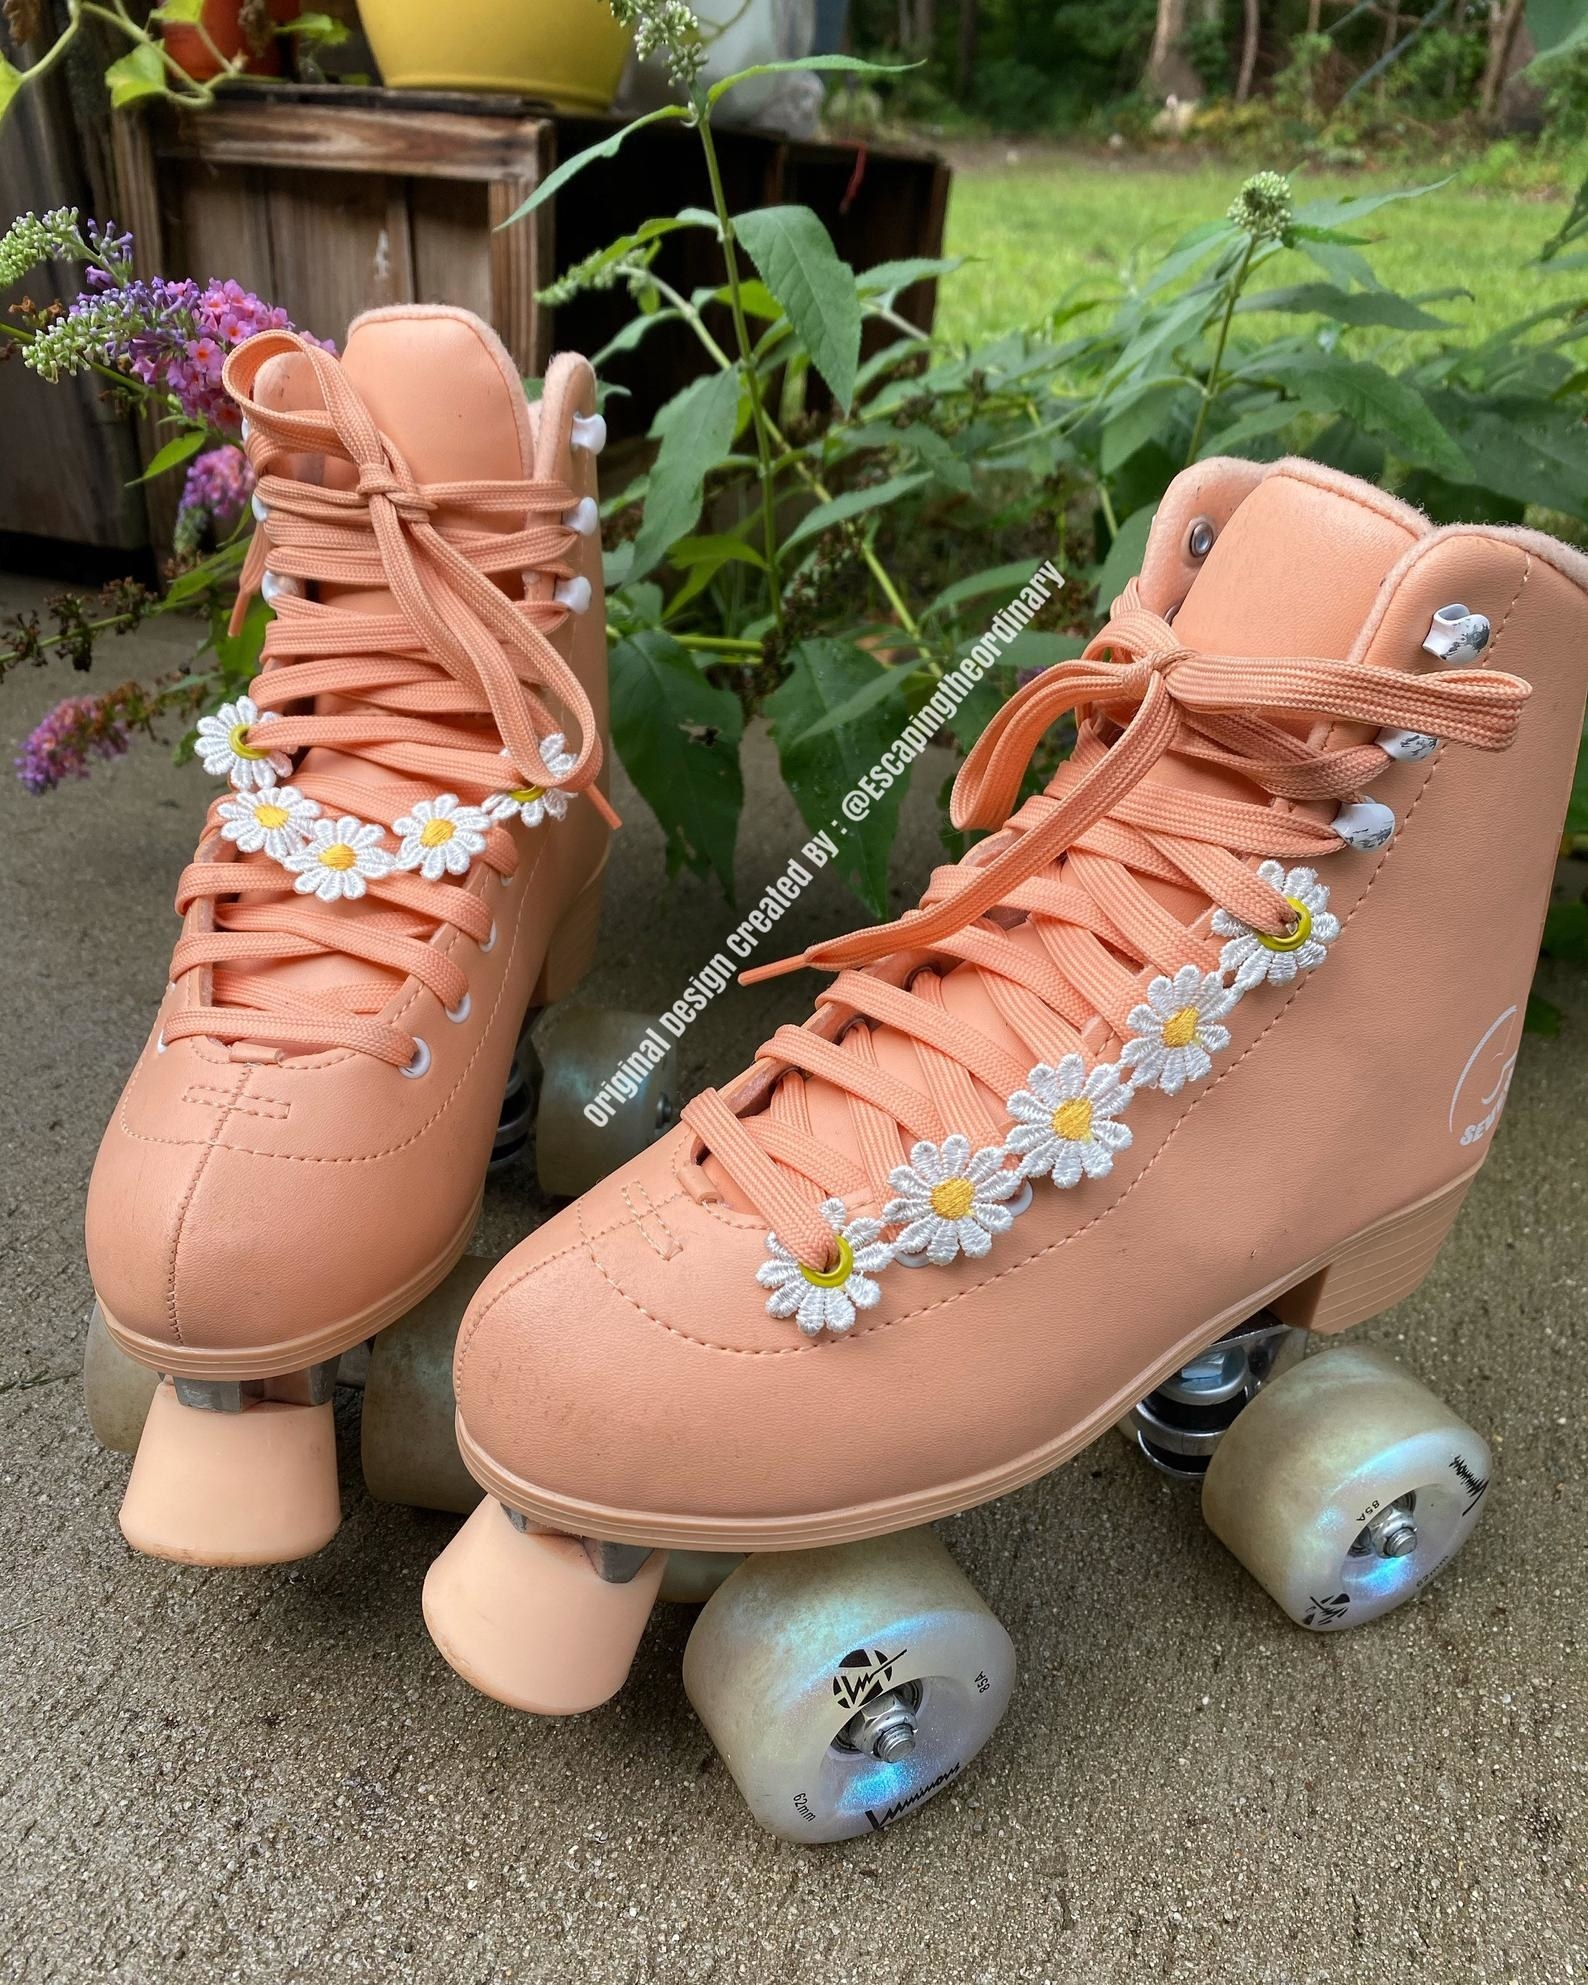 daisy chain accessories for shoes